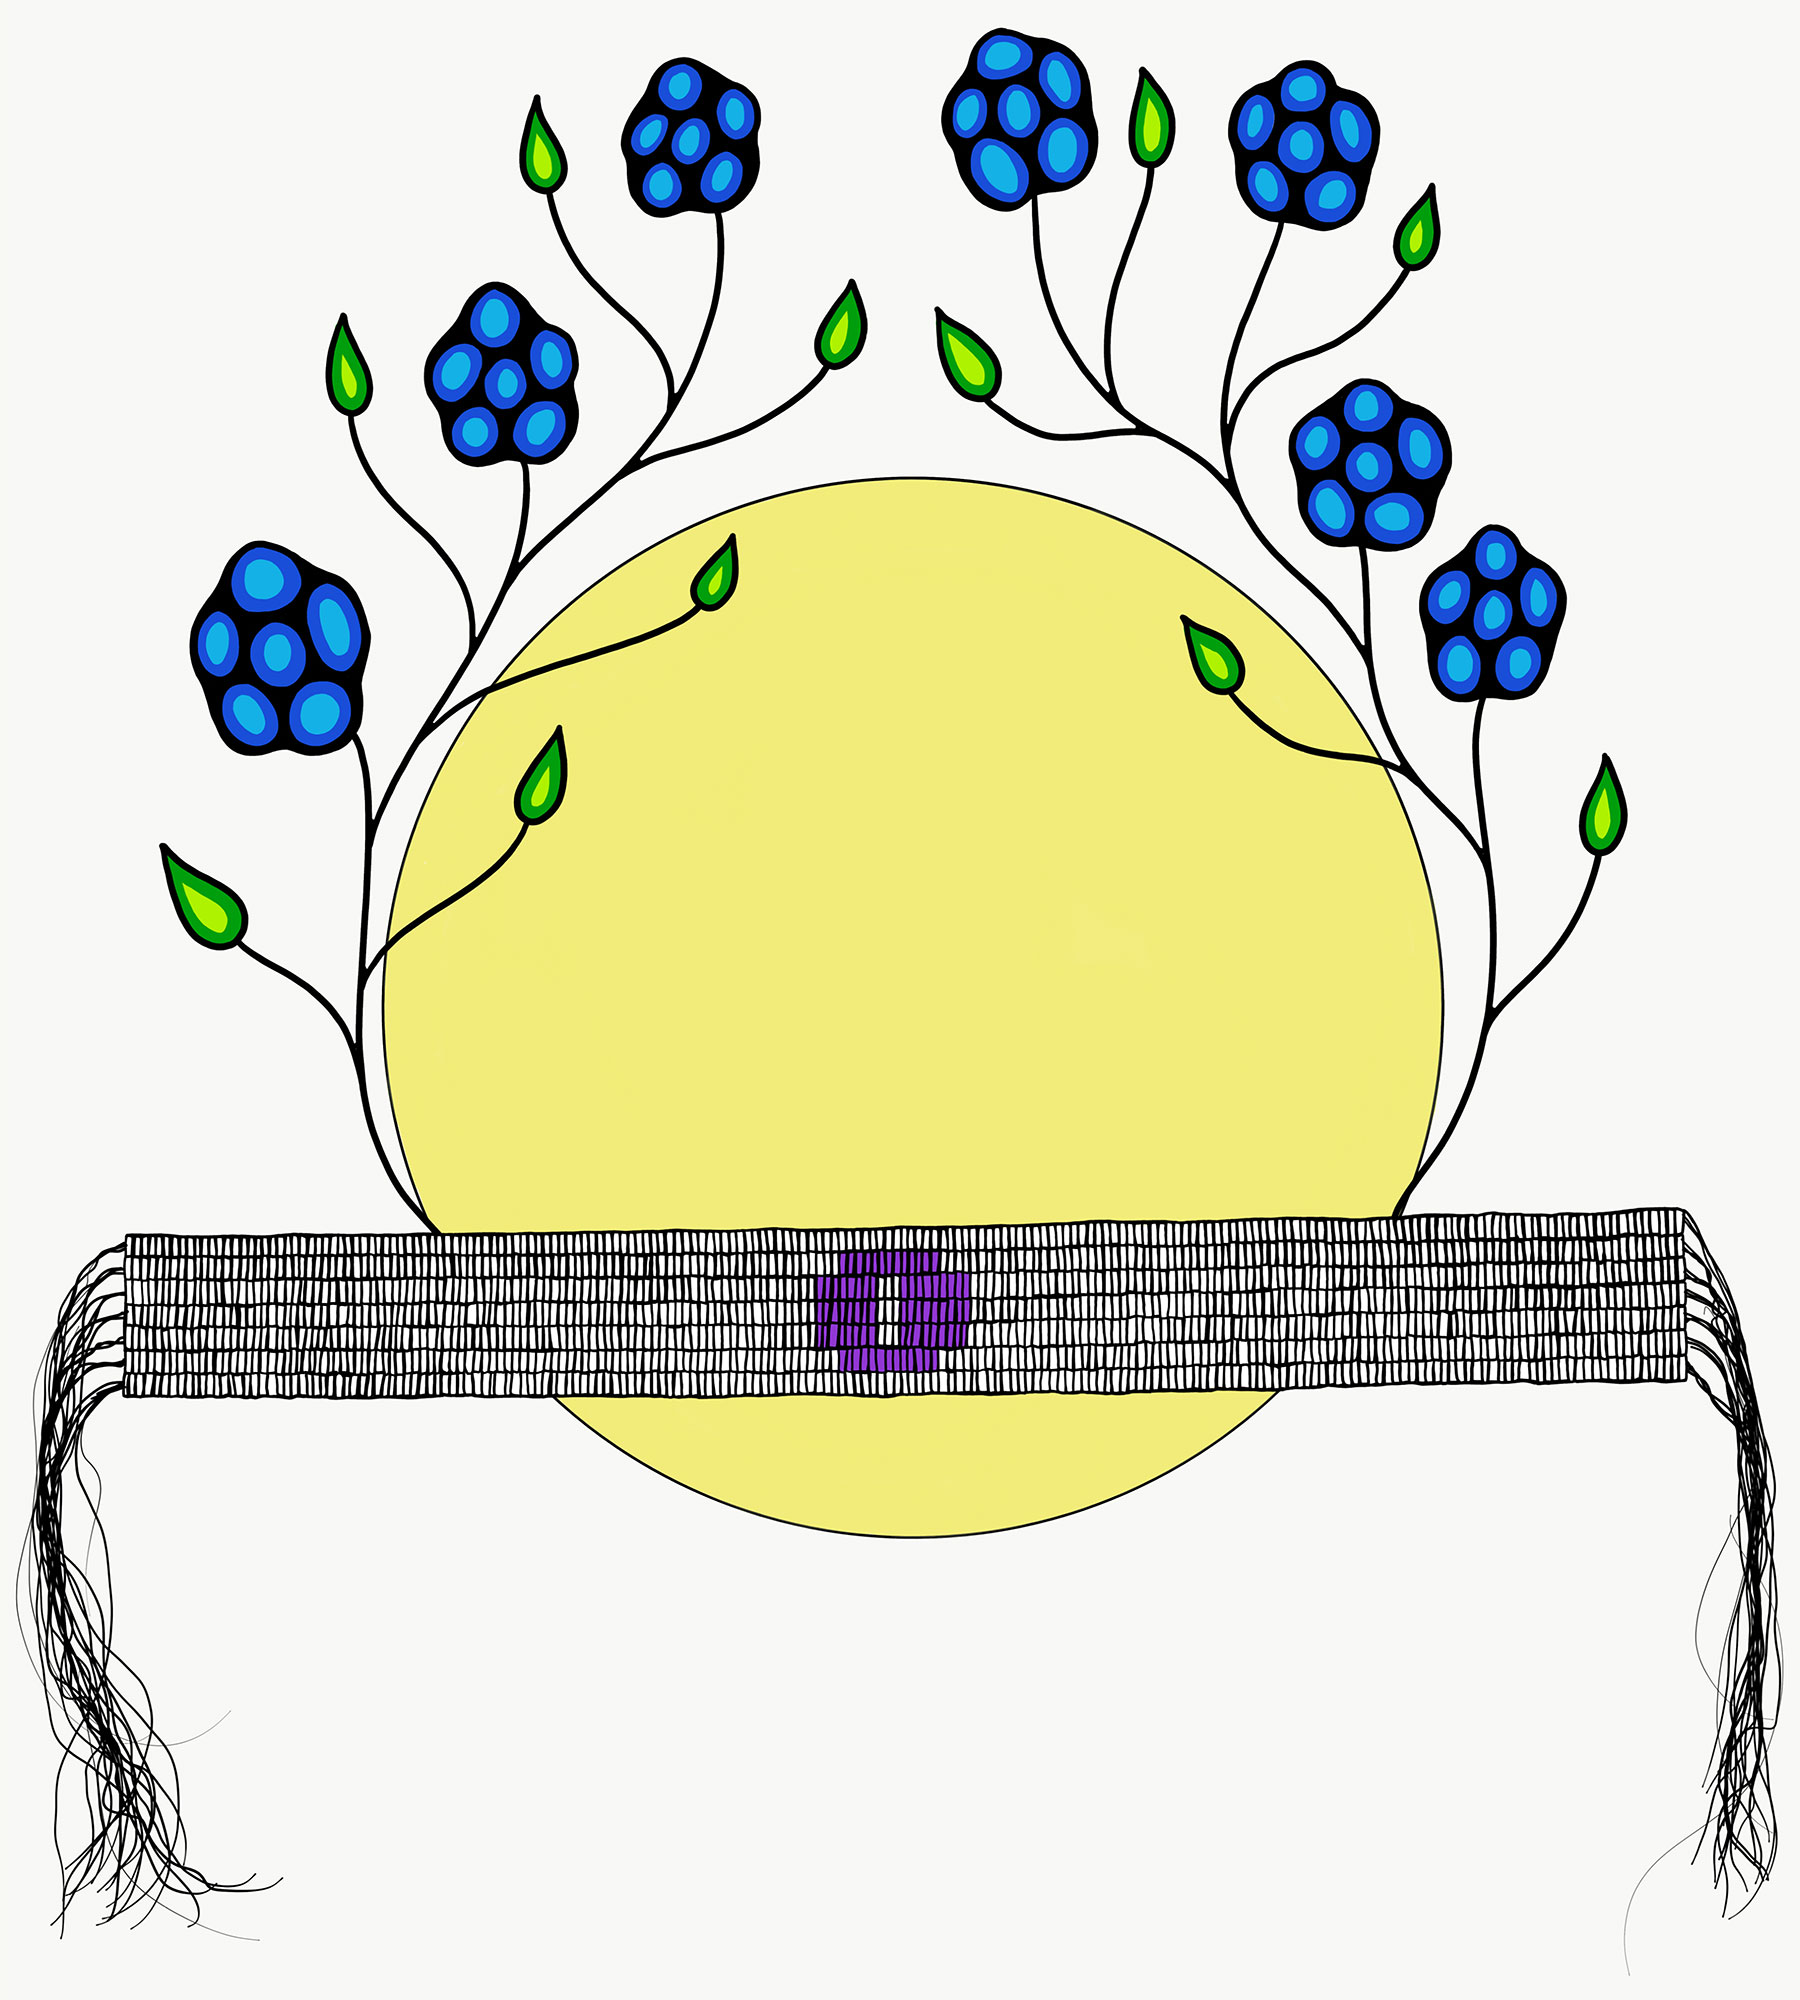 [wampum illustration]